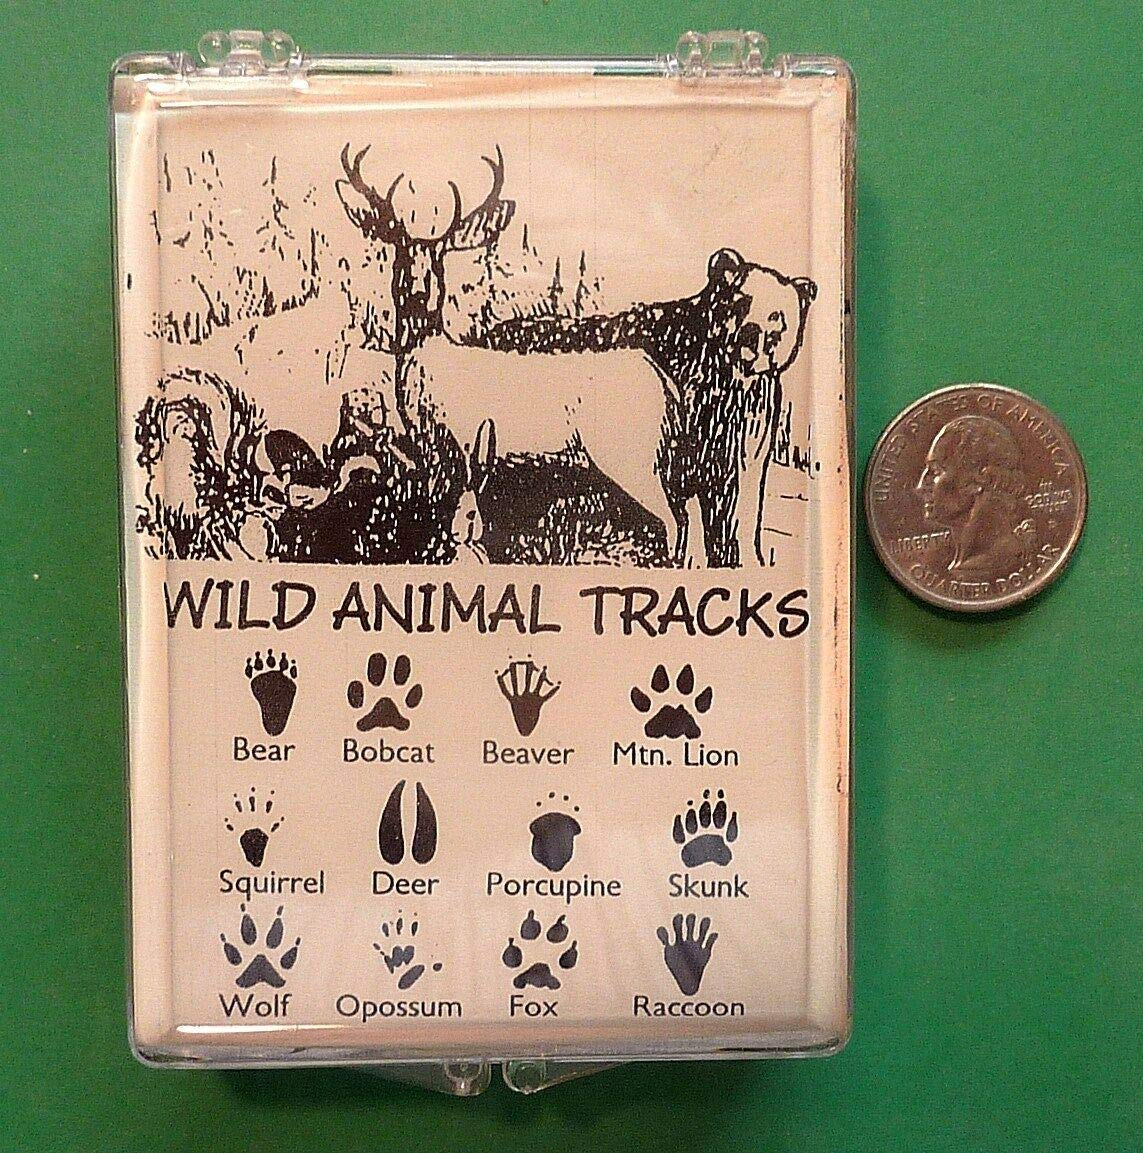 Wild Animal Tracks, Set of 12 Wood Mounted Rubber Stamps - Rubber Stamp Wood Carving Blocks by Wooden Stamps